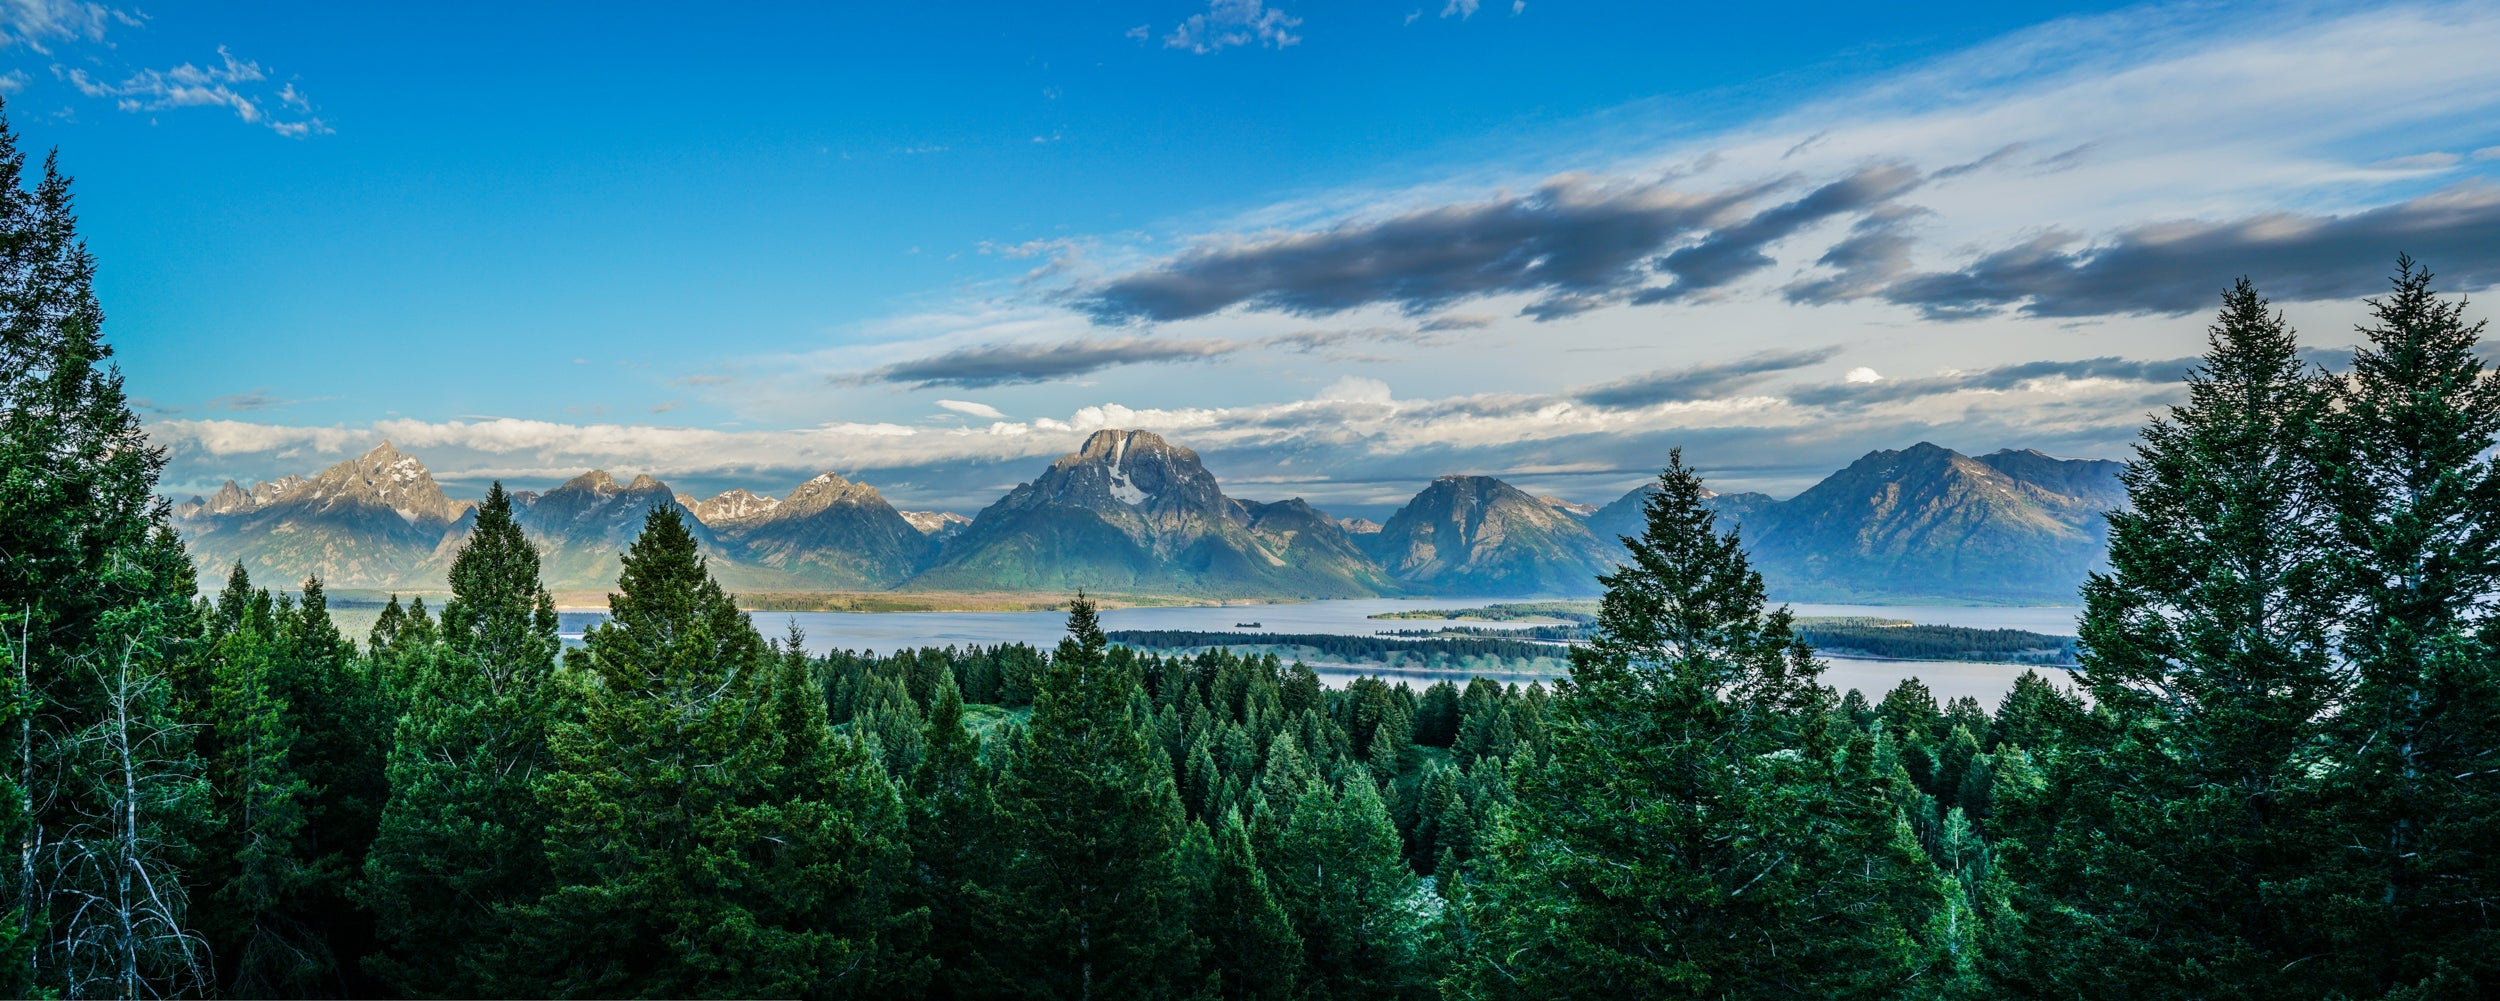 Grand Teton Overlook